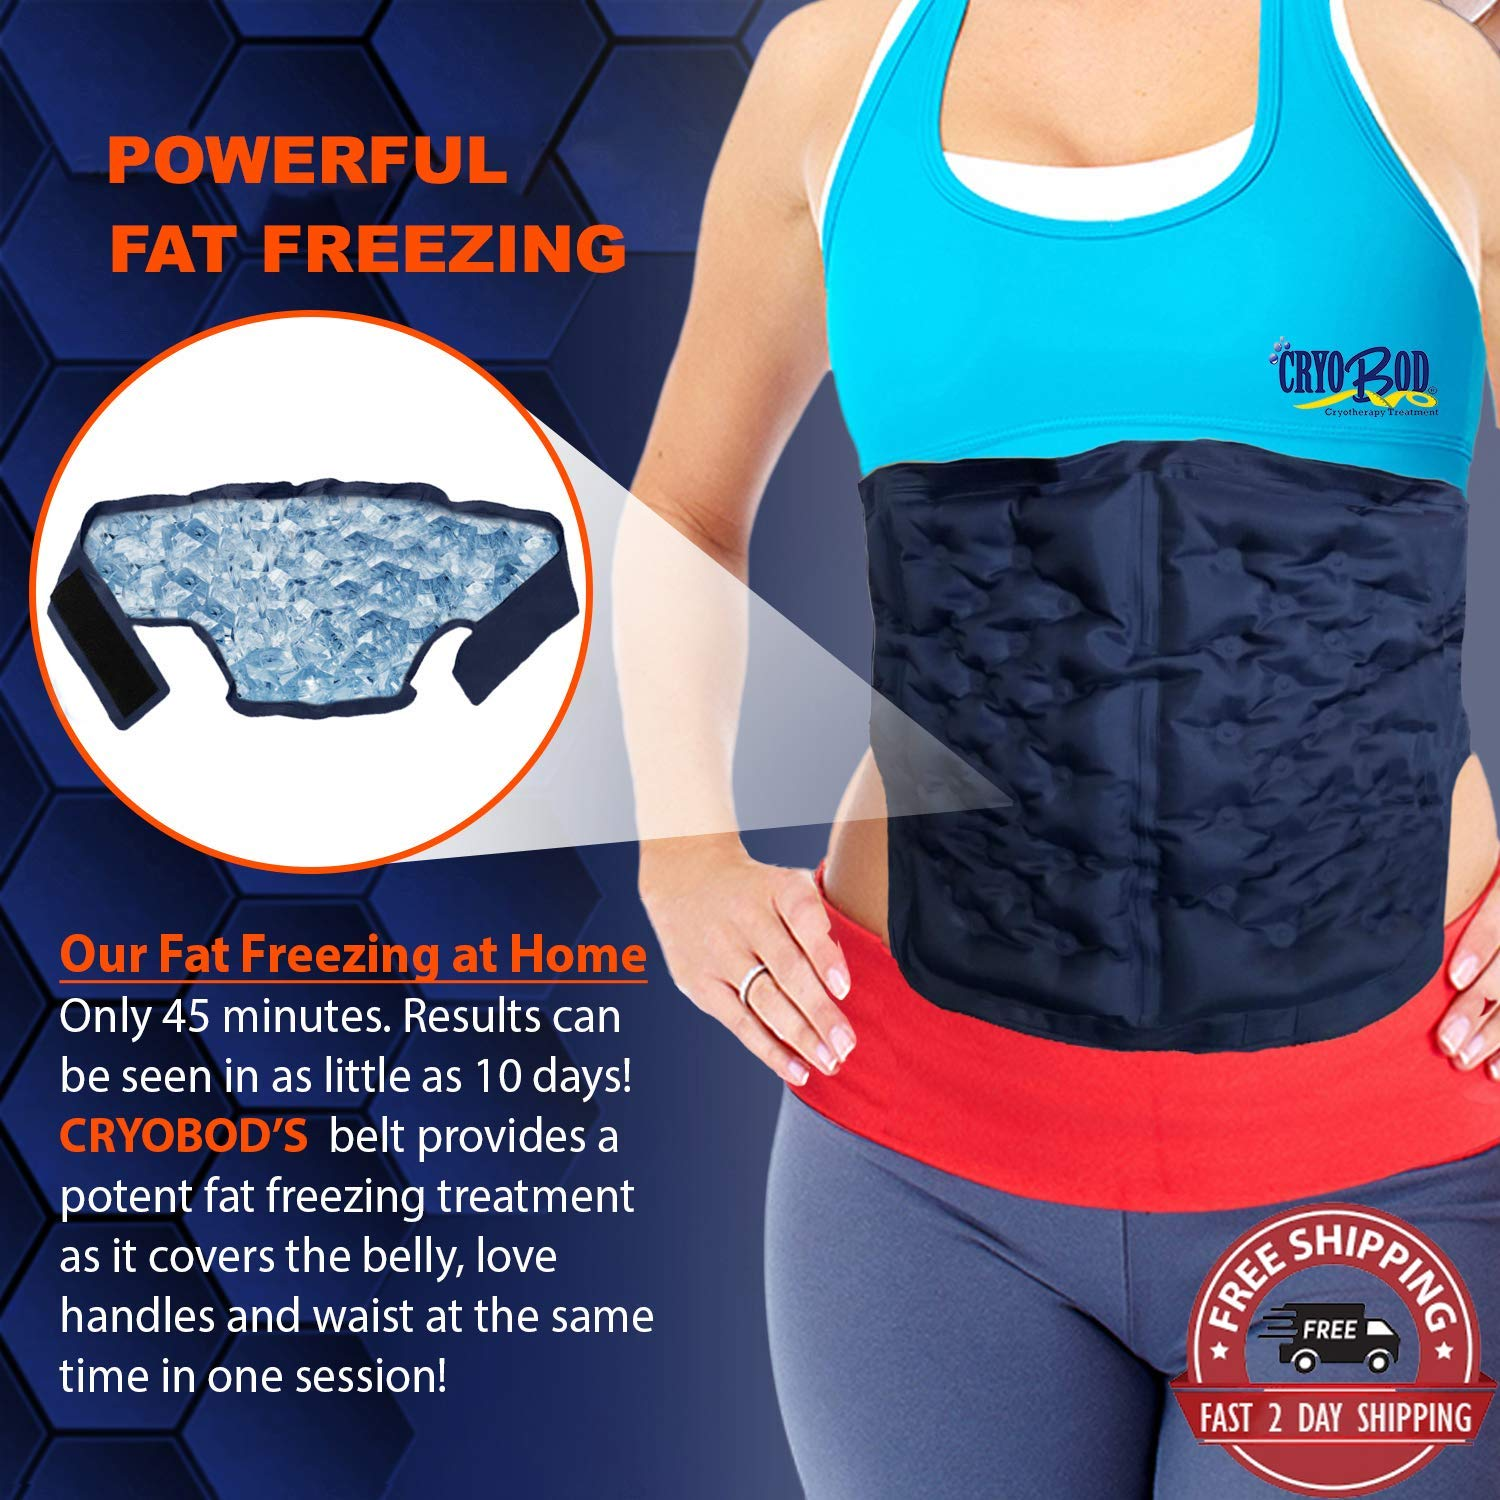 CRYOBOD Fat Freezer Belt - Cool Body Sculpting & Fat Freezing System for Weight Loss - Ultimate Freeze Wrap for Fat Burning - Comfy Skin-Safe Cold Sculpt Cryolipolysis for Waist & Belly Fat Reduction Fits 29 to 39 Inch Waist